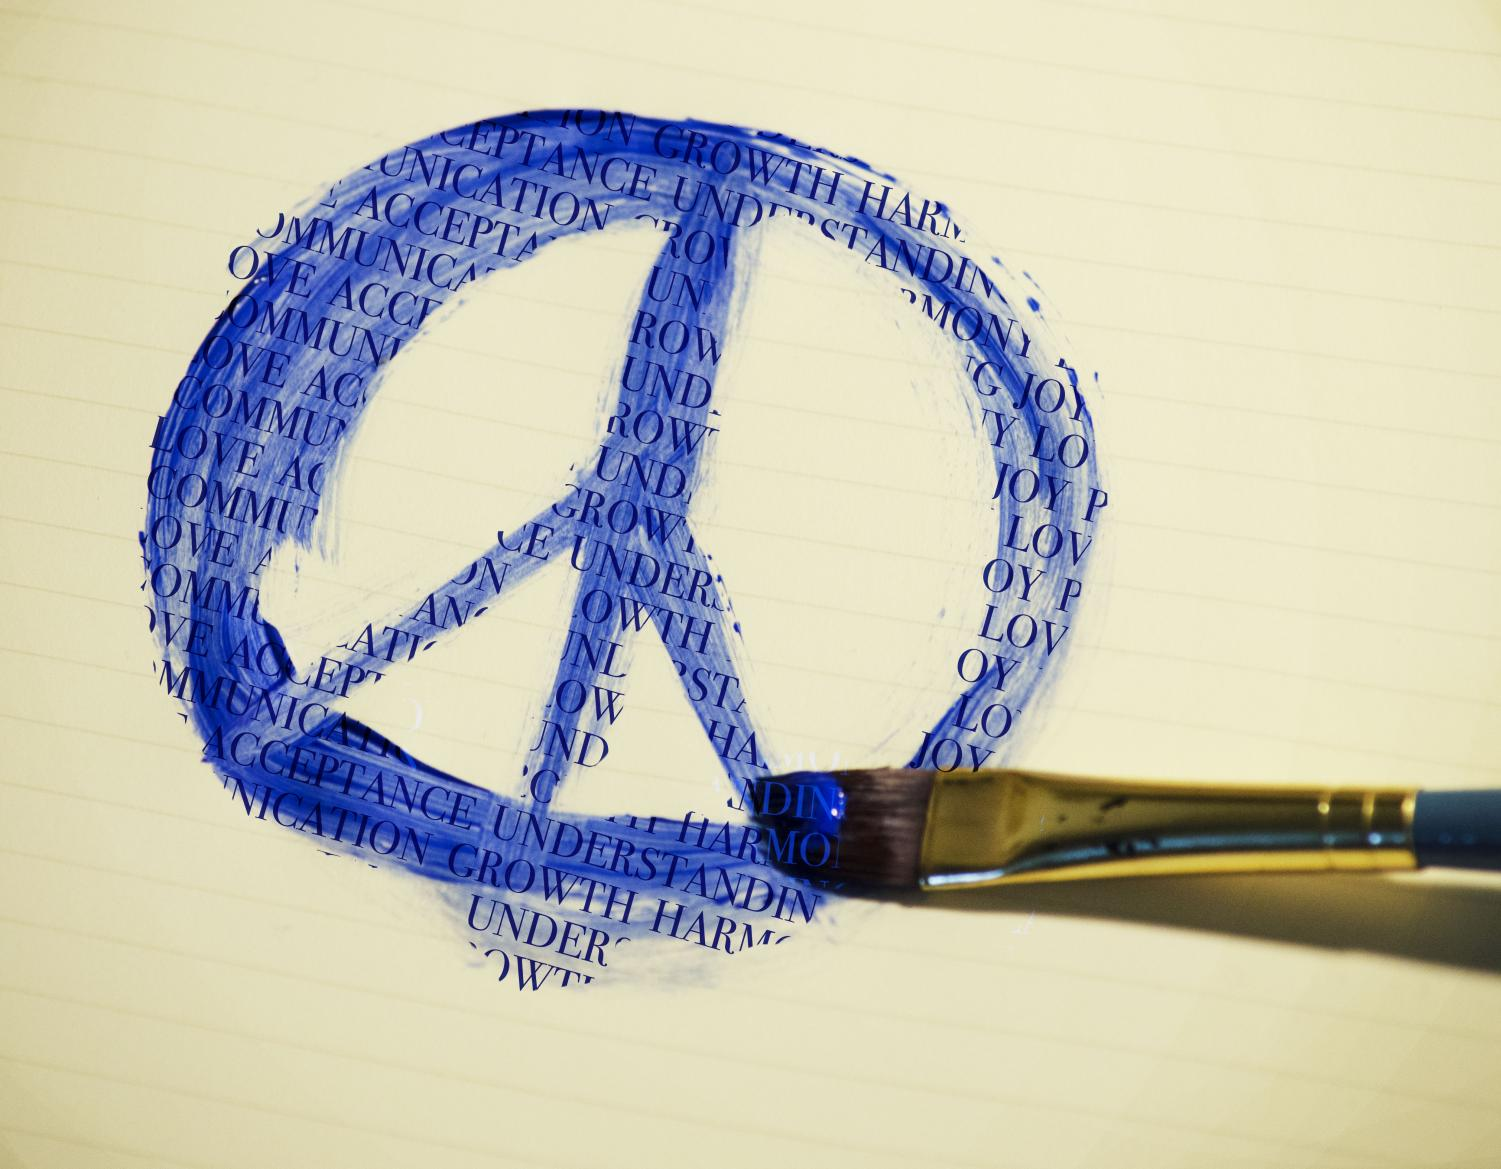 Words have the ability to create and promote a world of peace.